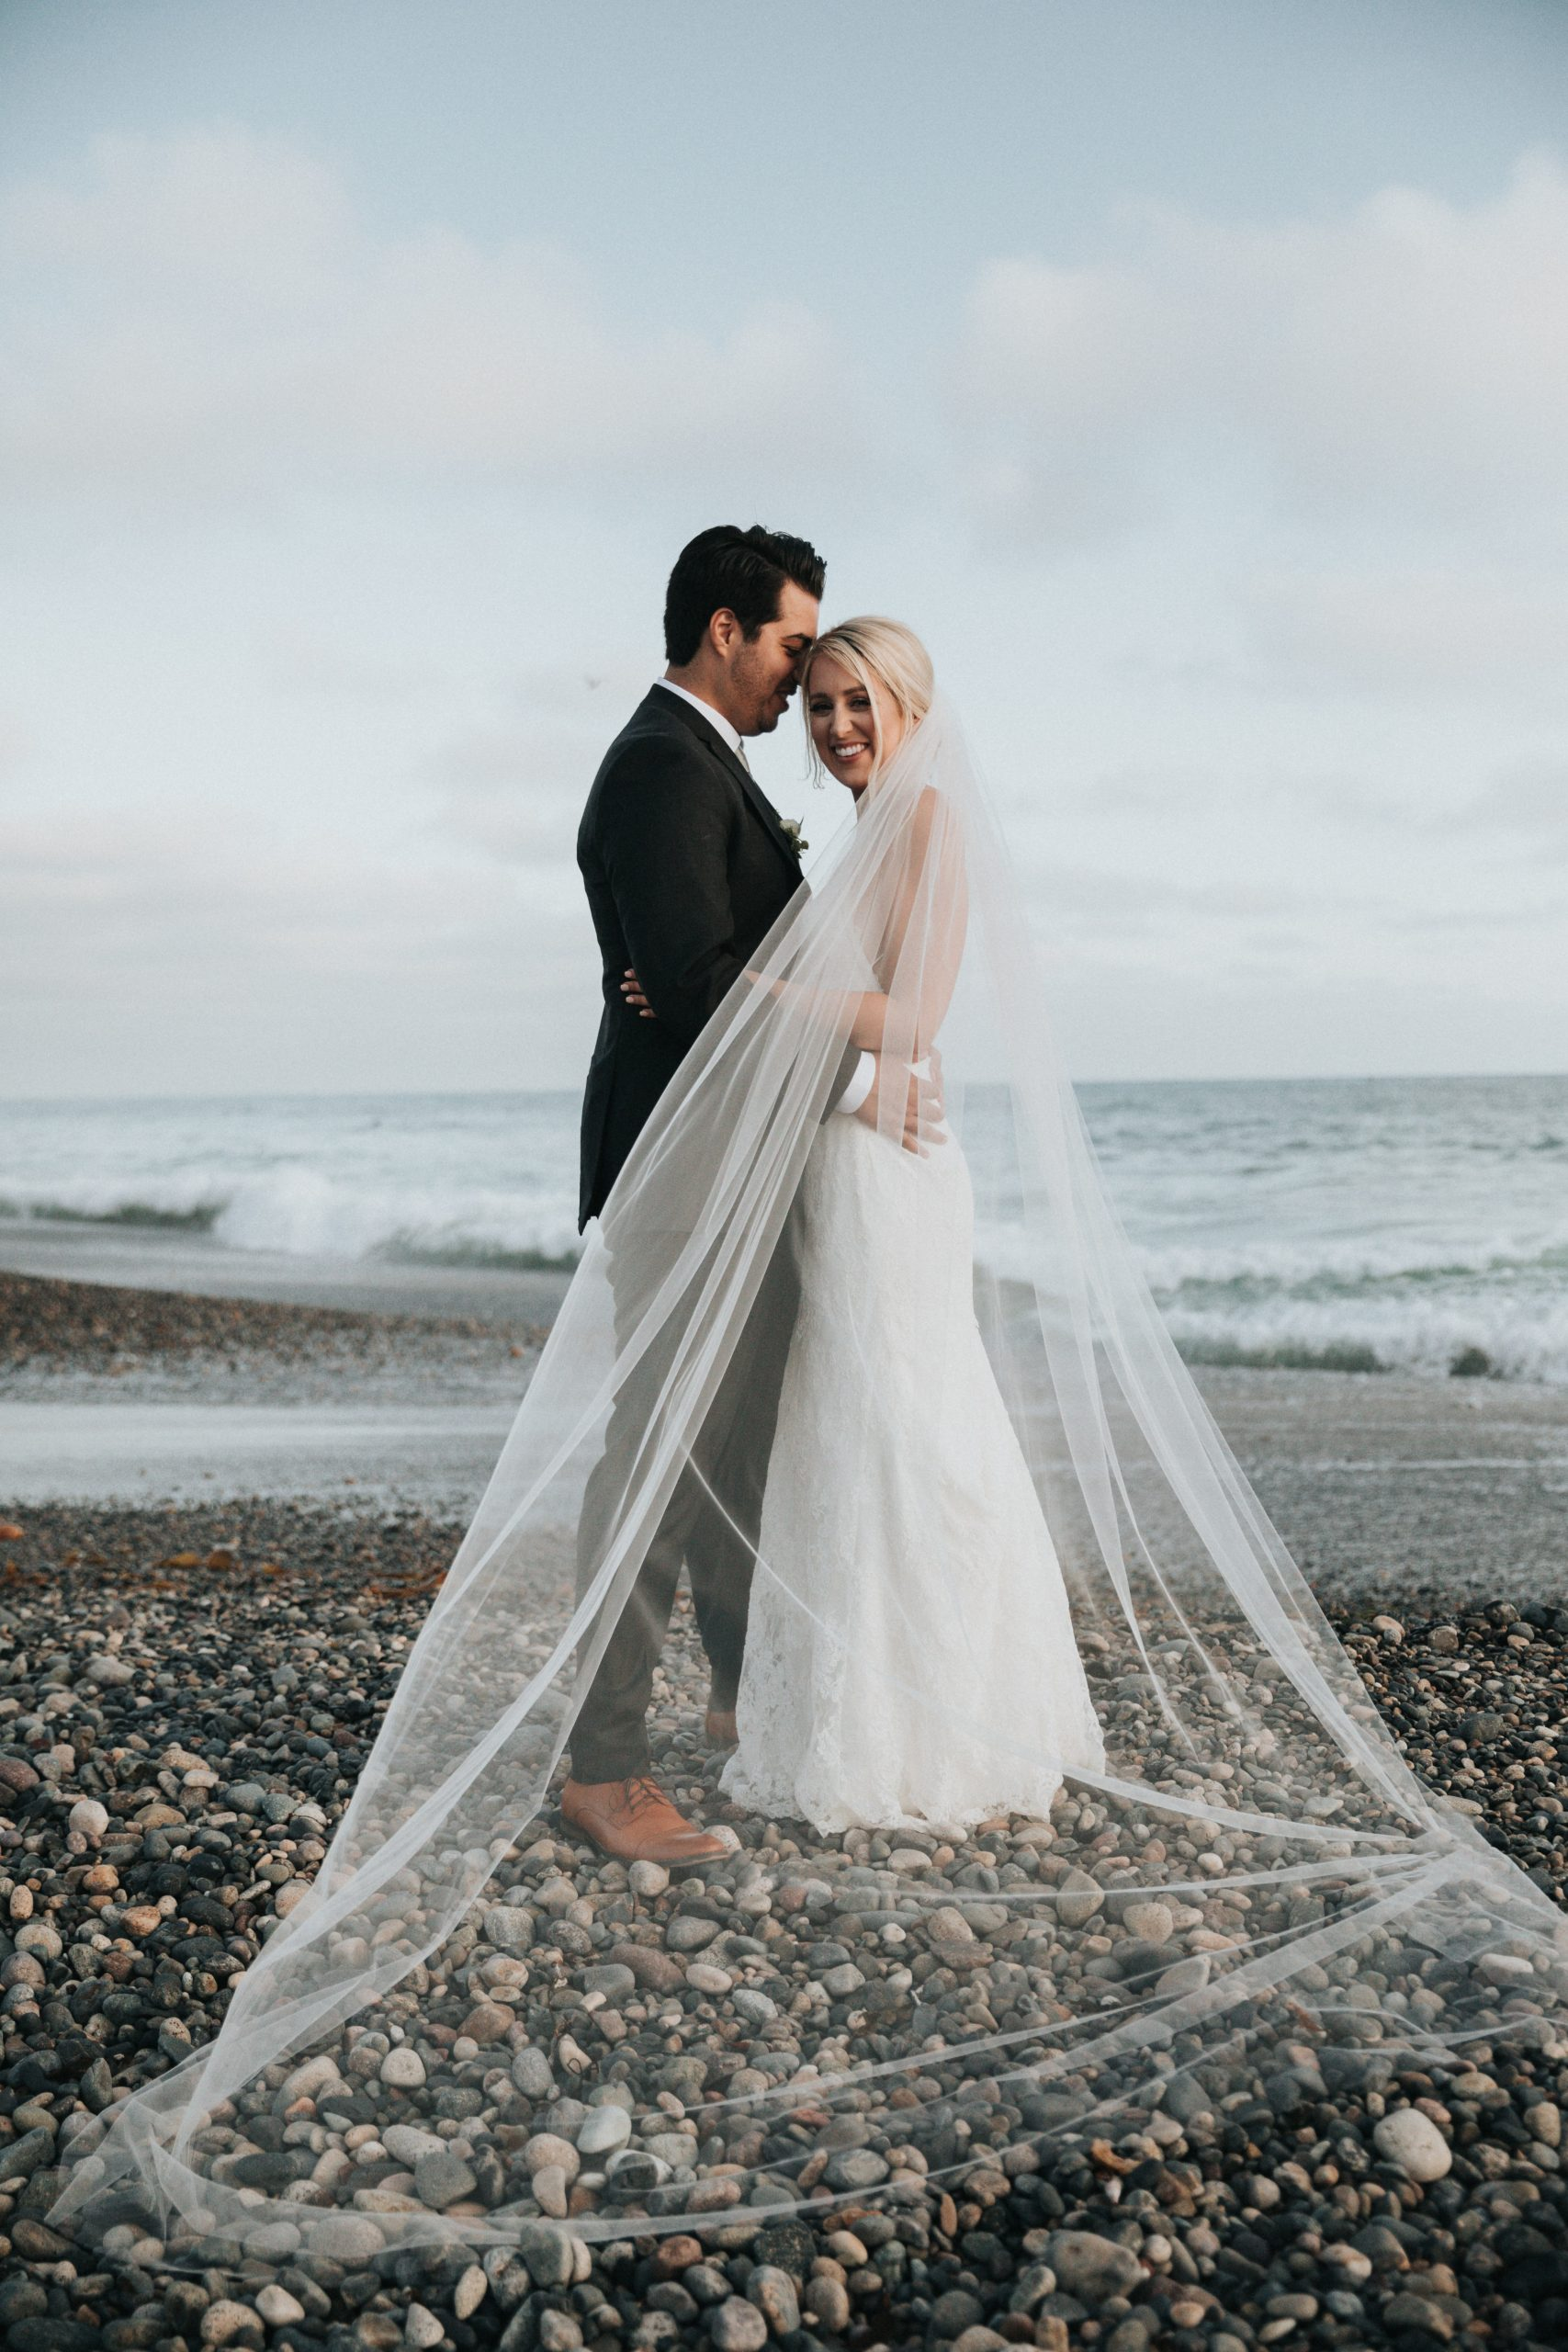 bride and groom on a pebble beach